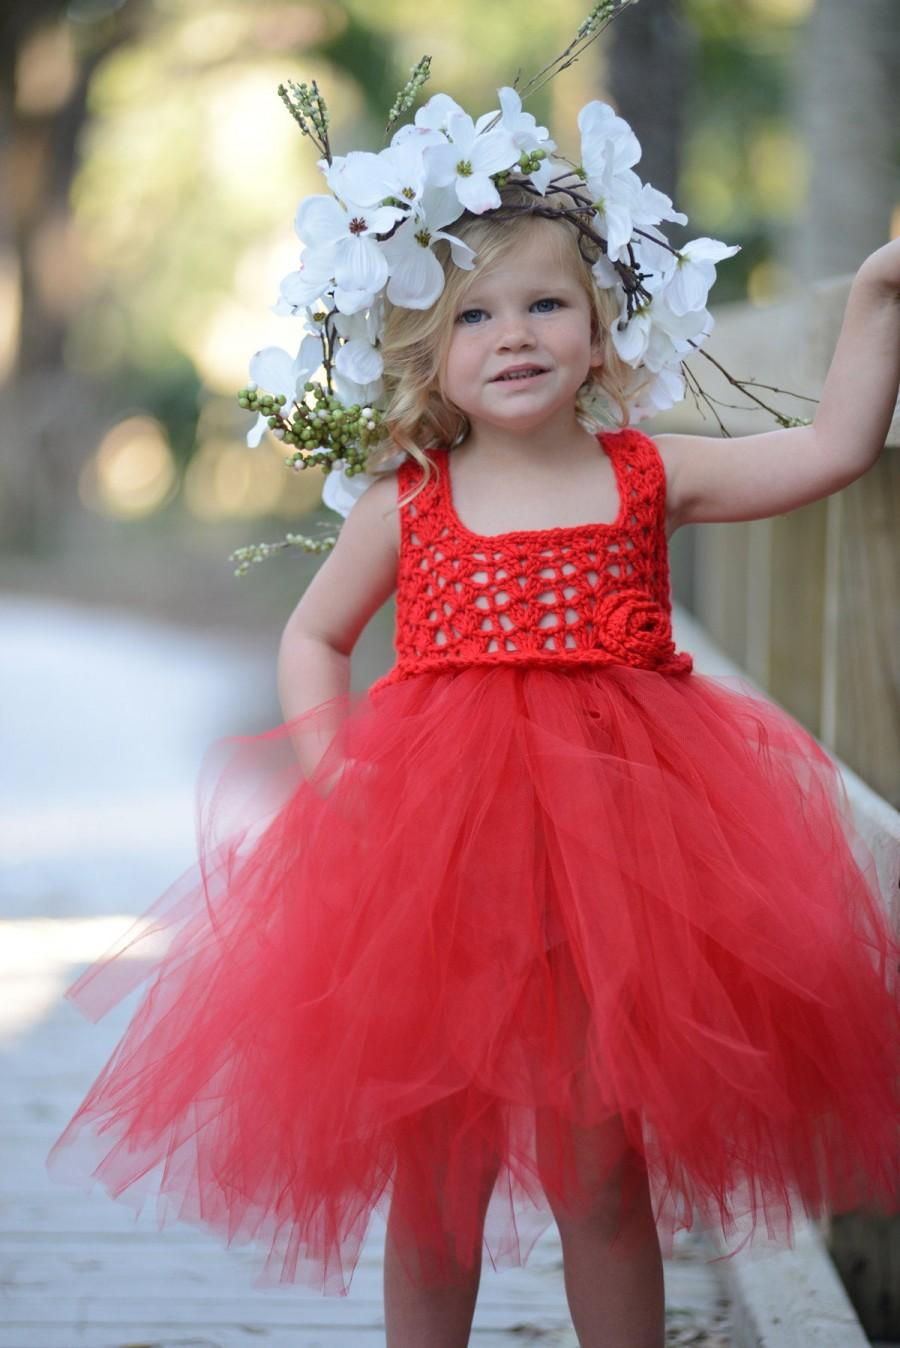 Wedding - Red Flower Girl Dress/Red Tutu Dress/Red Toddler Tutu Dress/Red Princess Tutu Dress/Red Birthday Tutu Dress/Red Long Tutu Dress